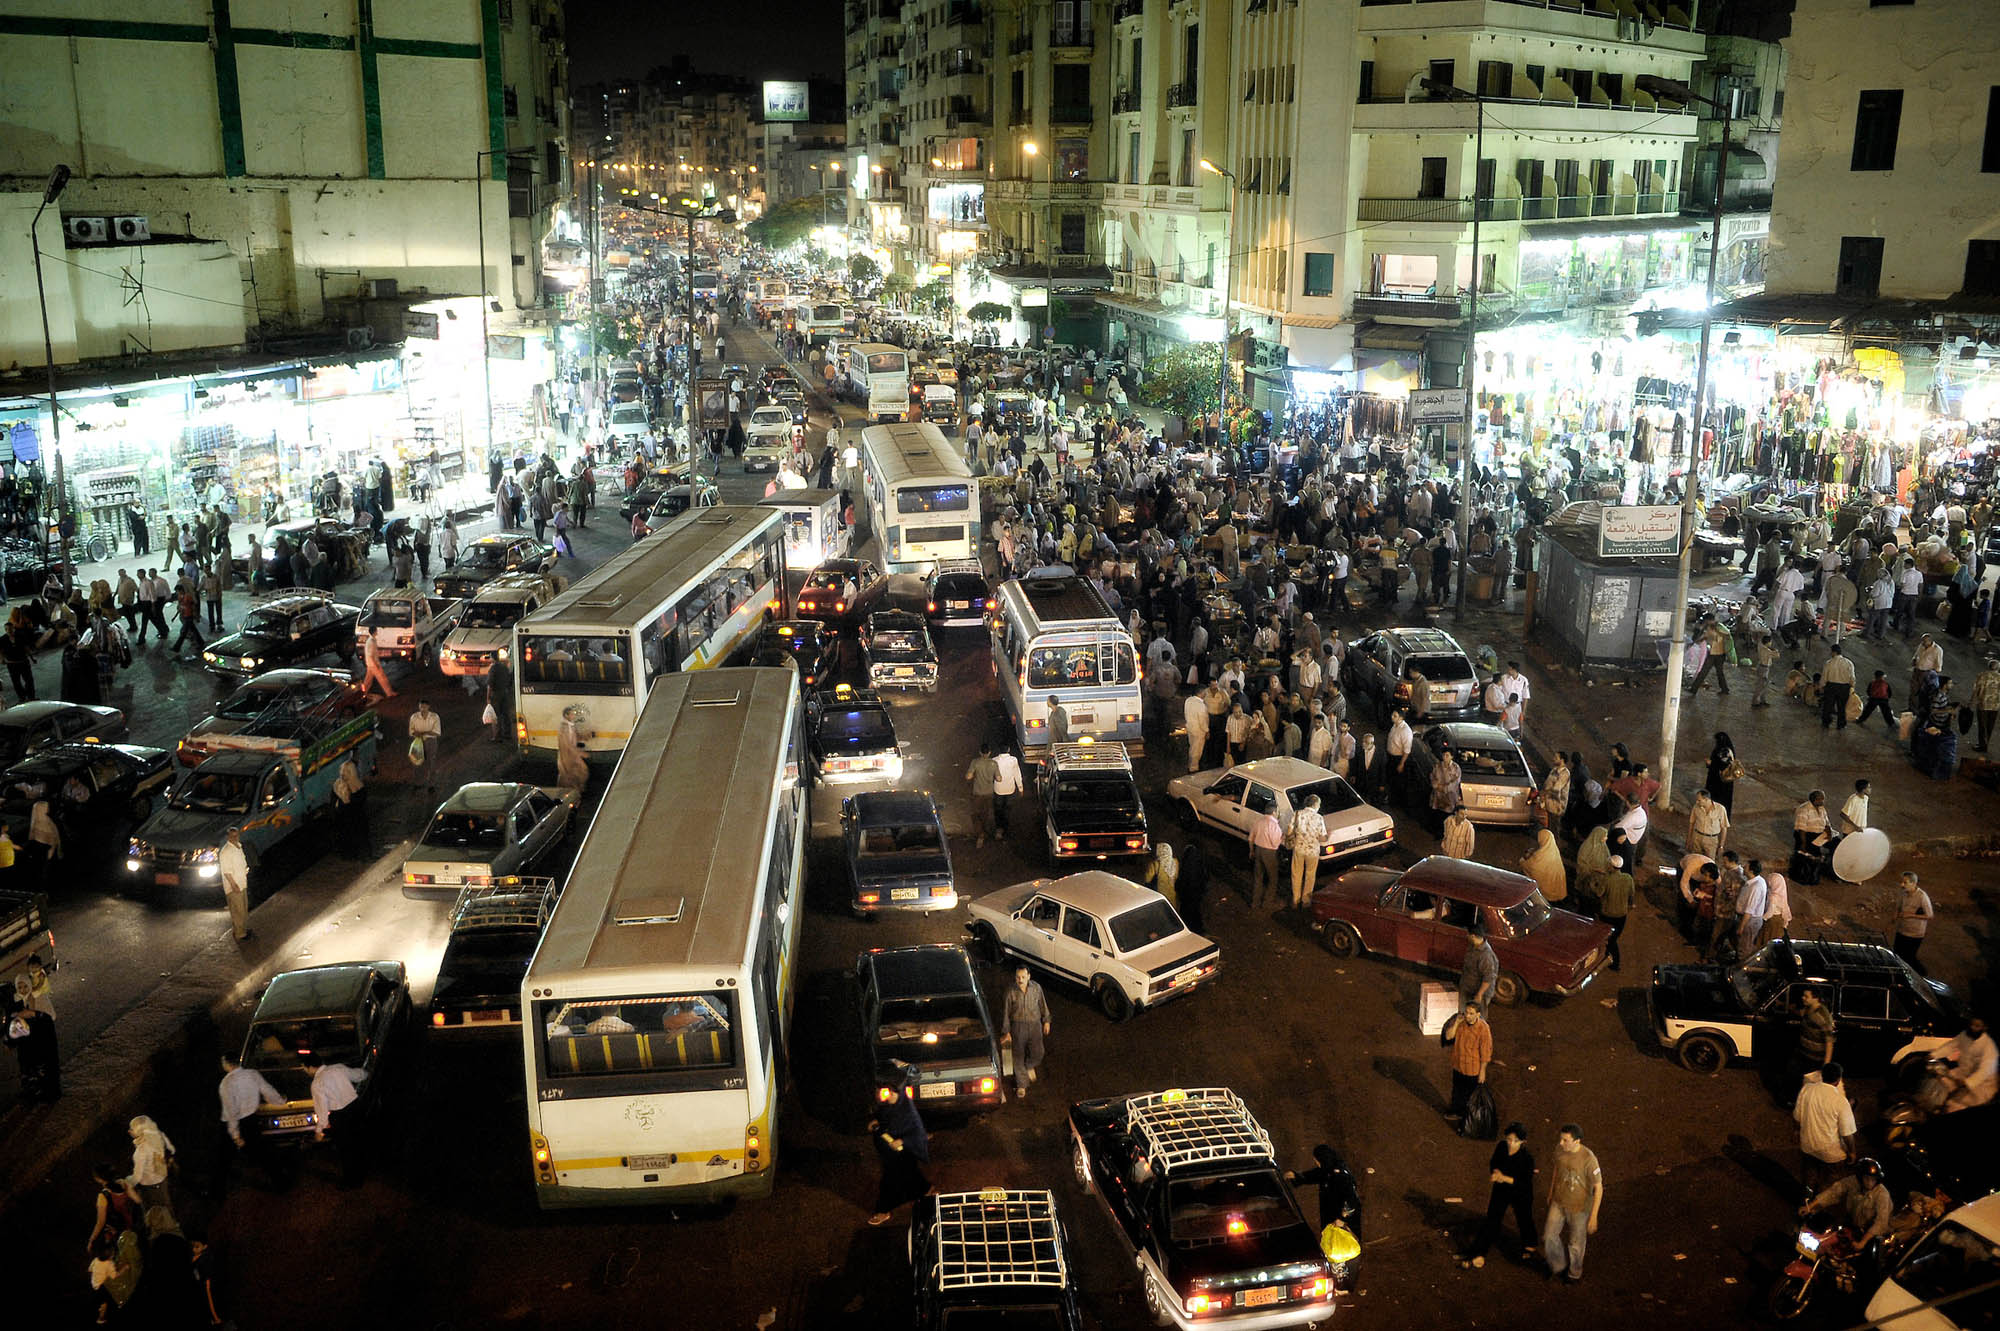 Traffic in Cairo